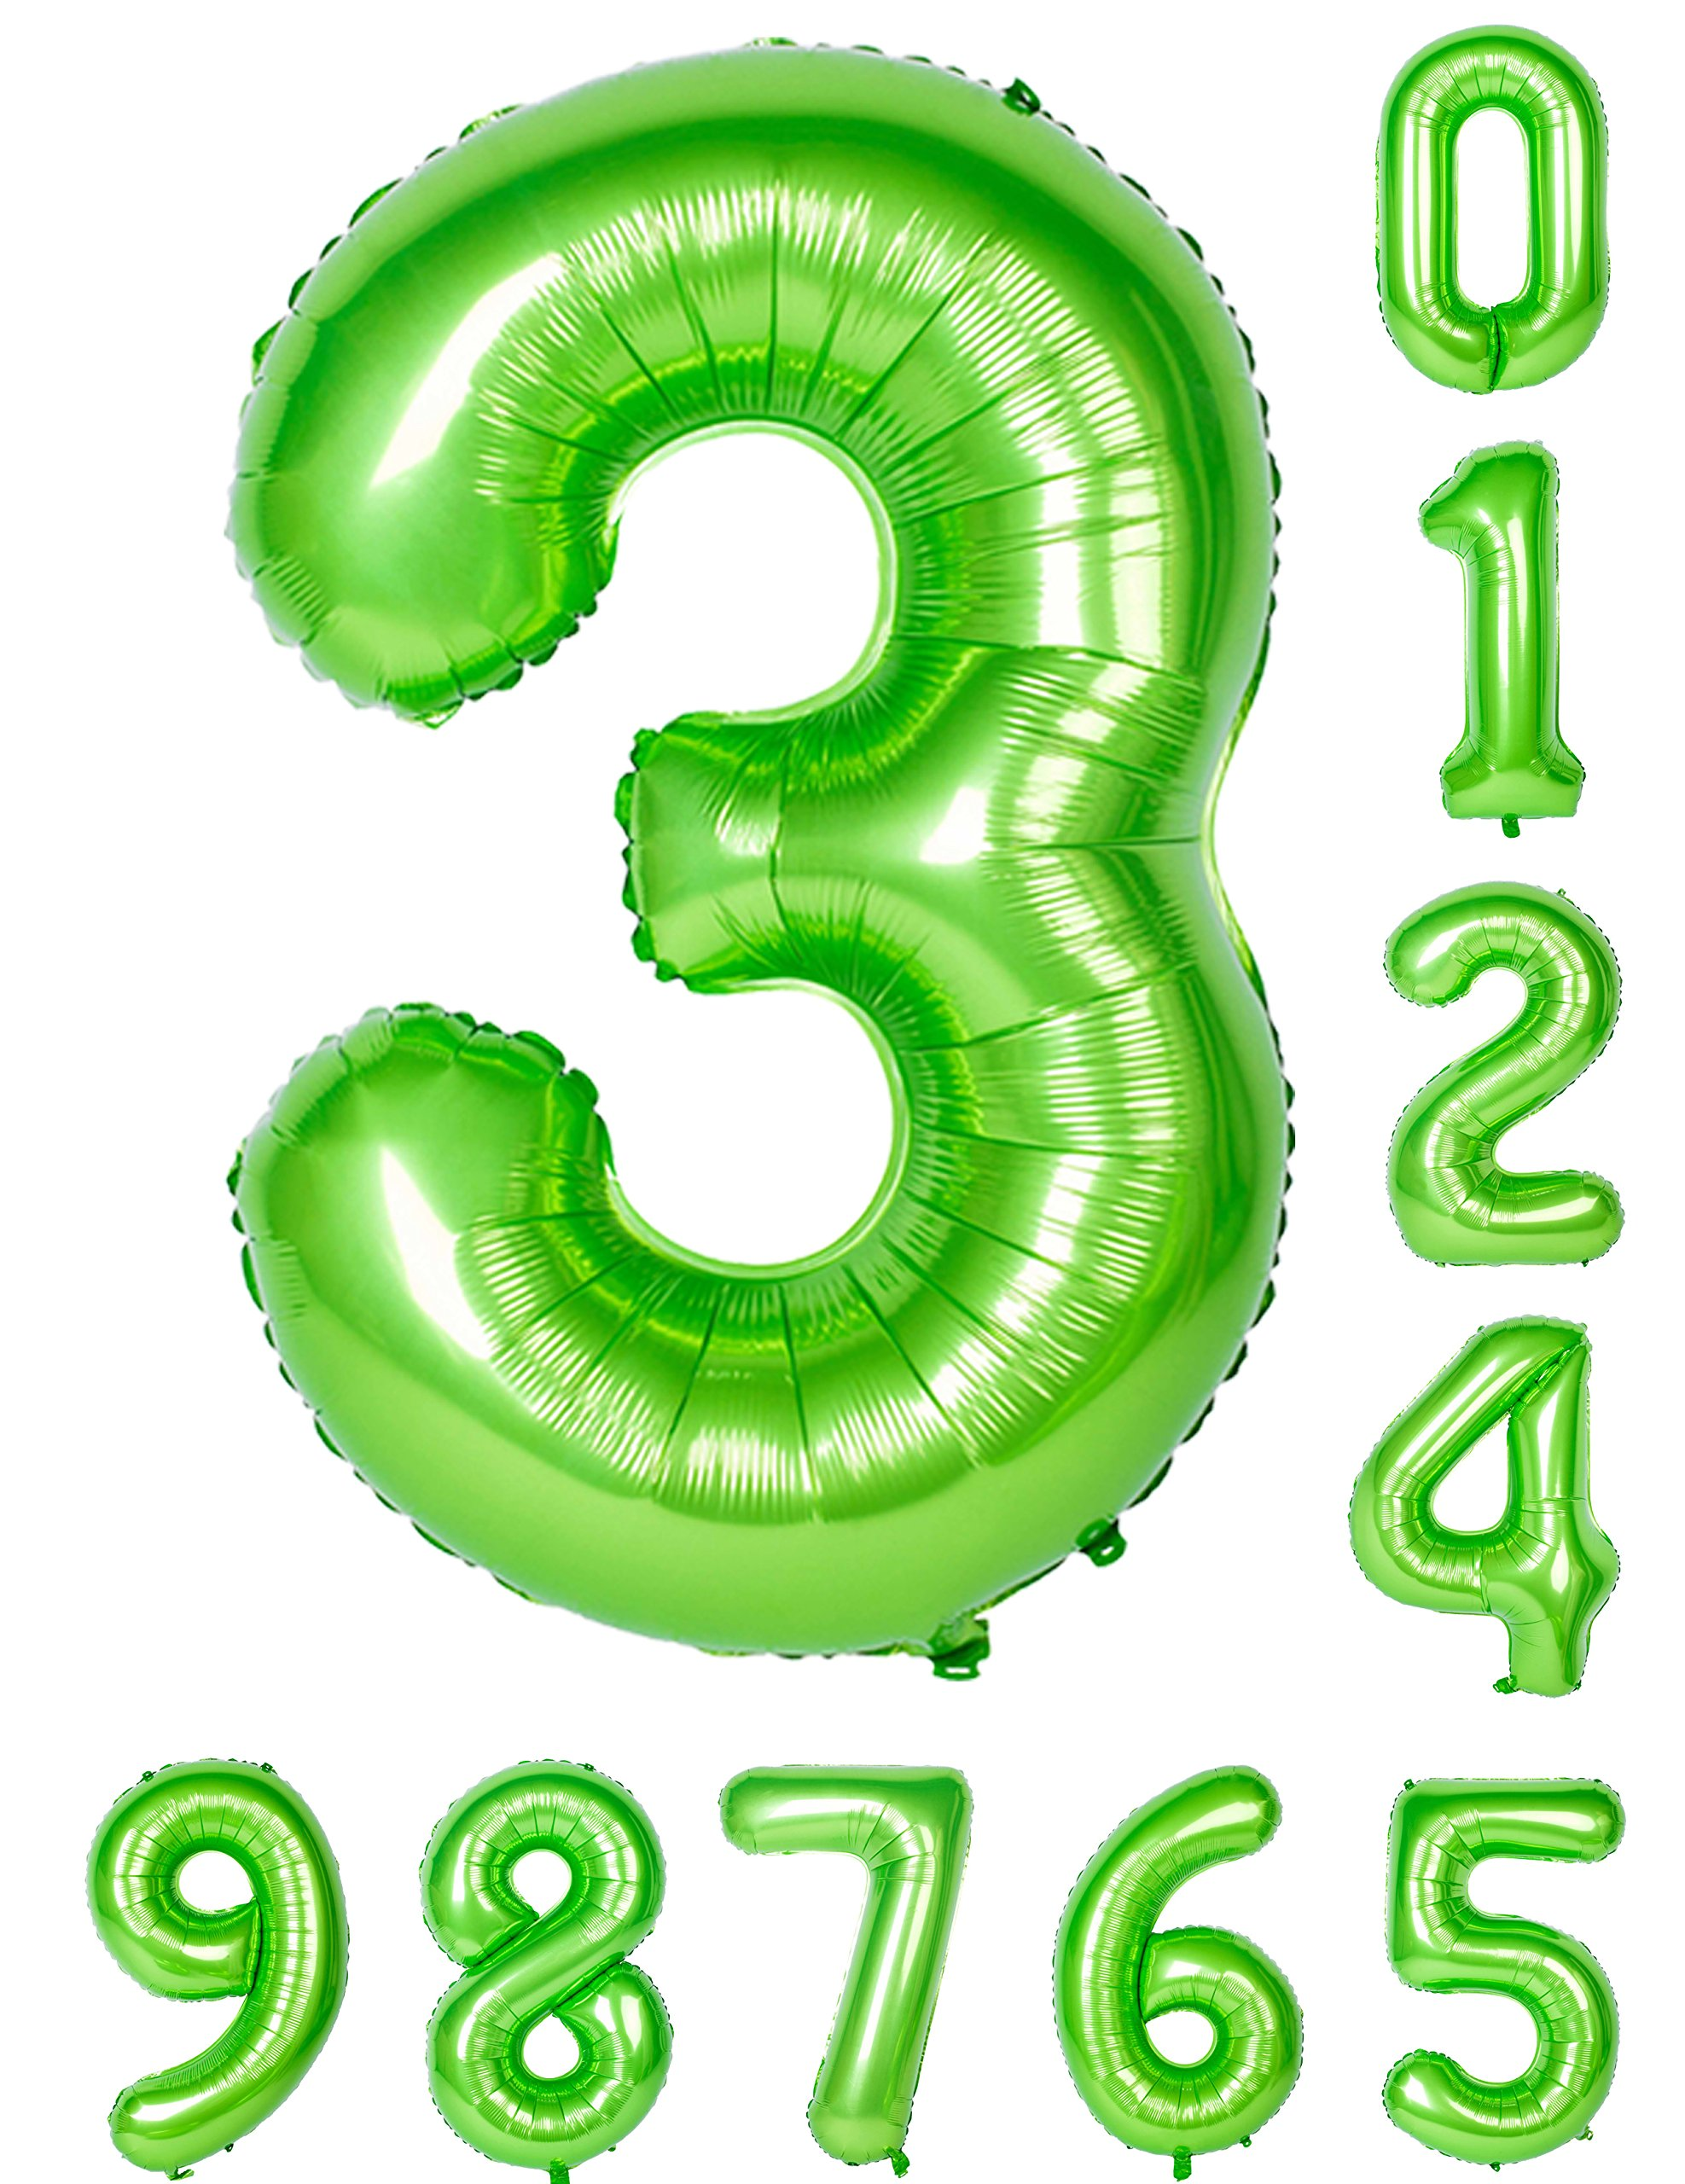 Green Numbers Balloon Birthday Party 40 Inch 0 9Zero Nine Mylar